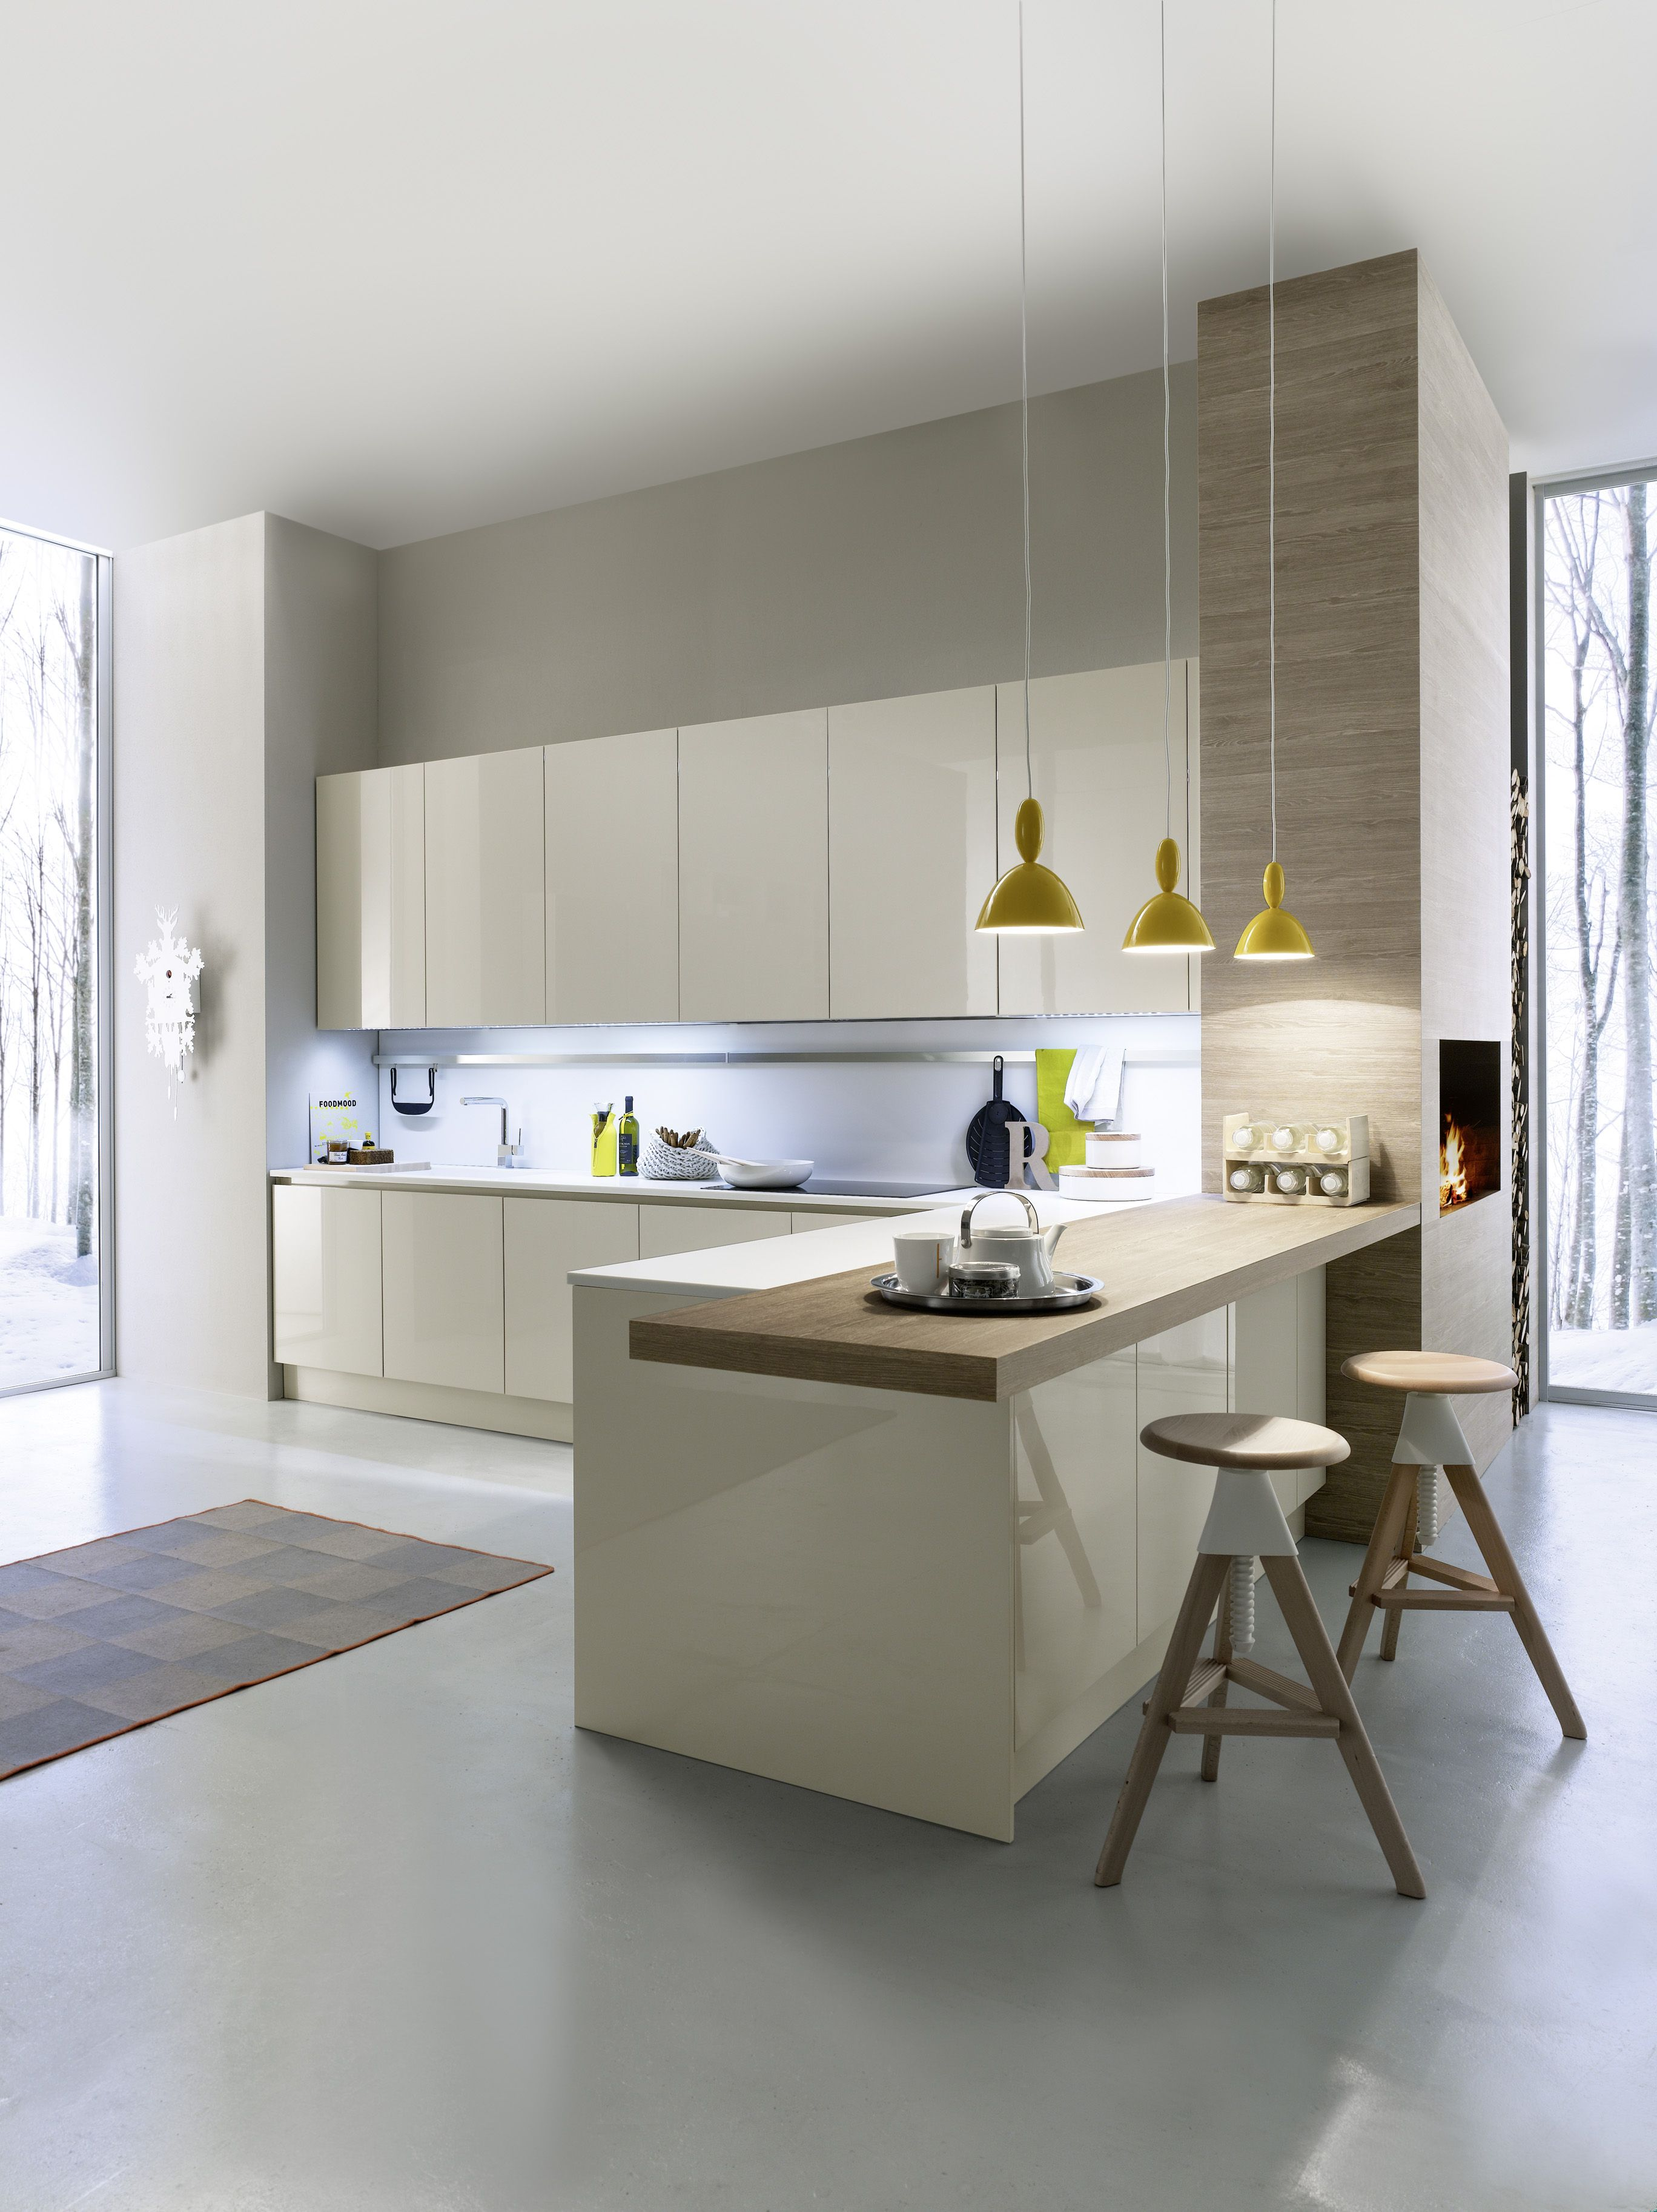 System collection kitchen design NYC deco in Pinterest